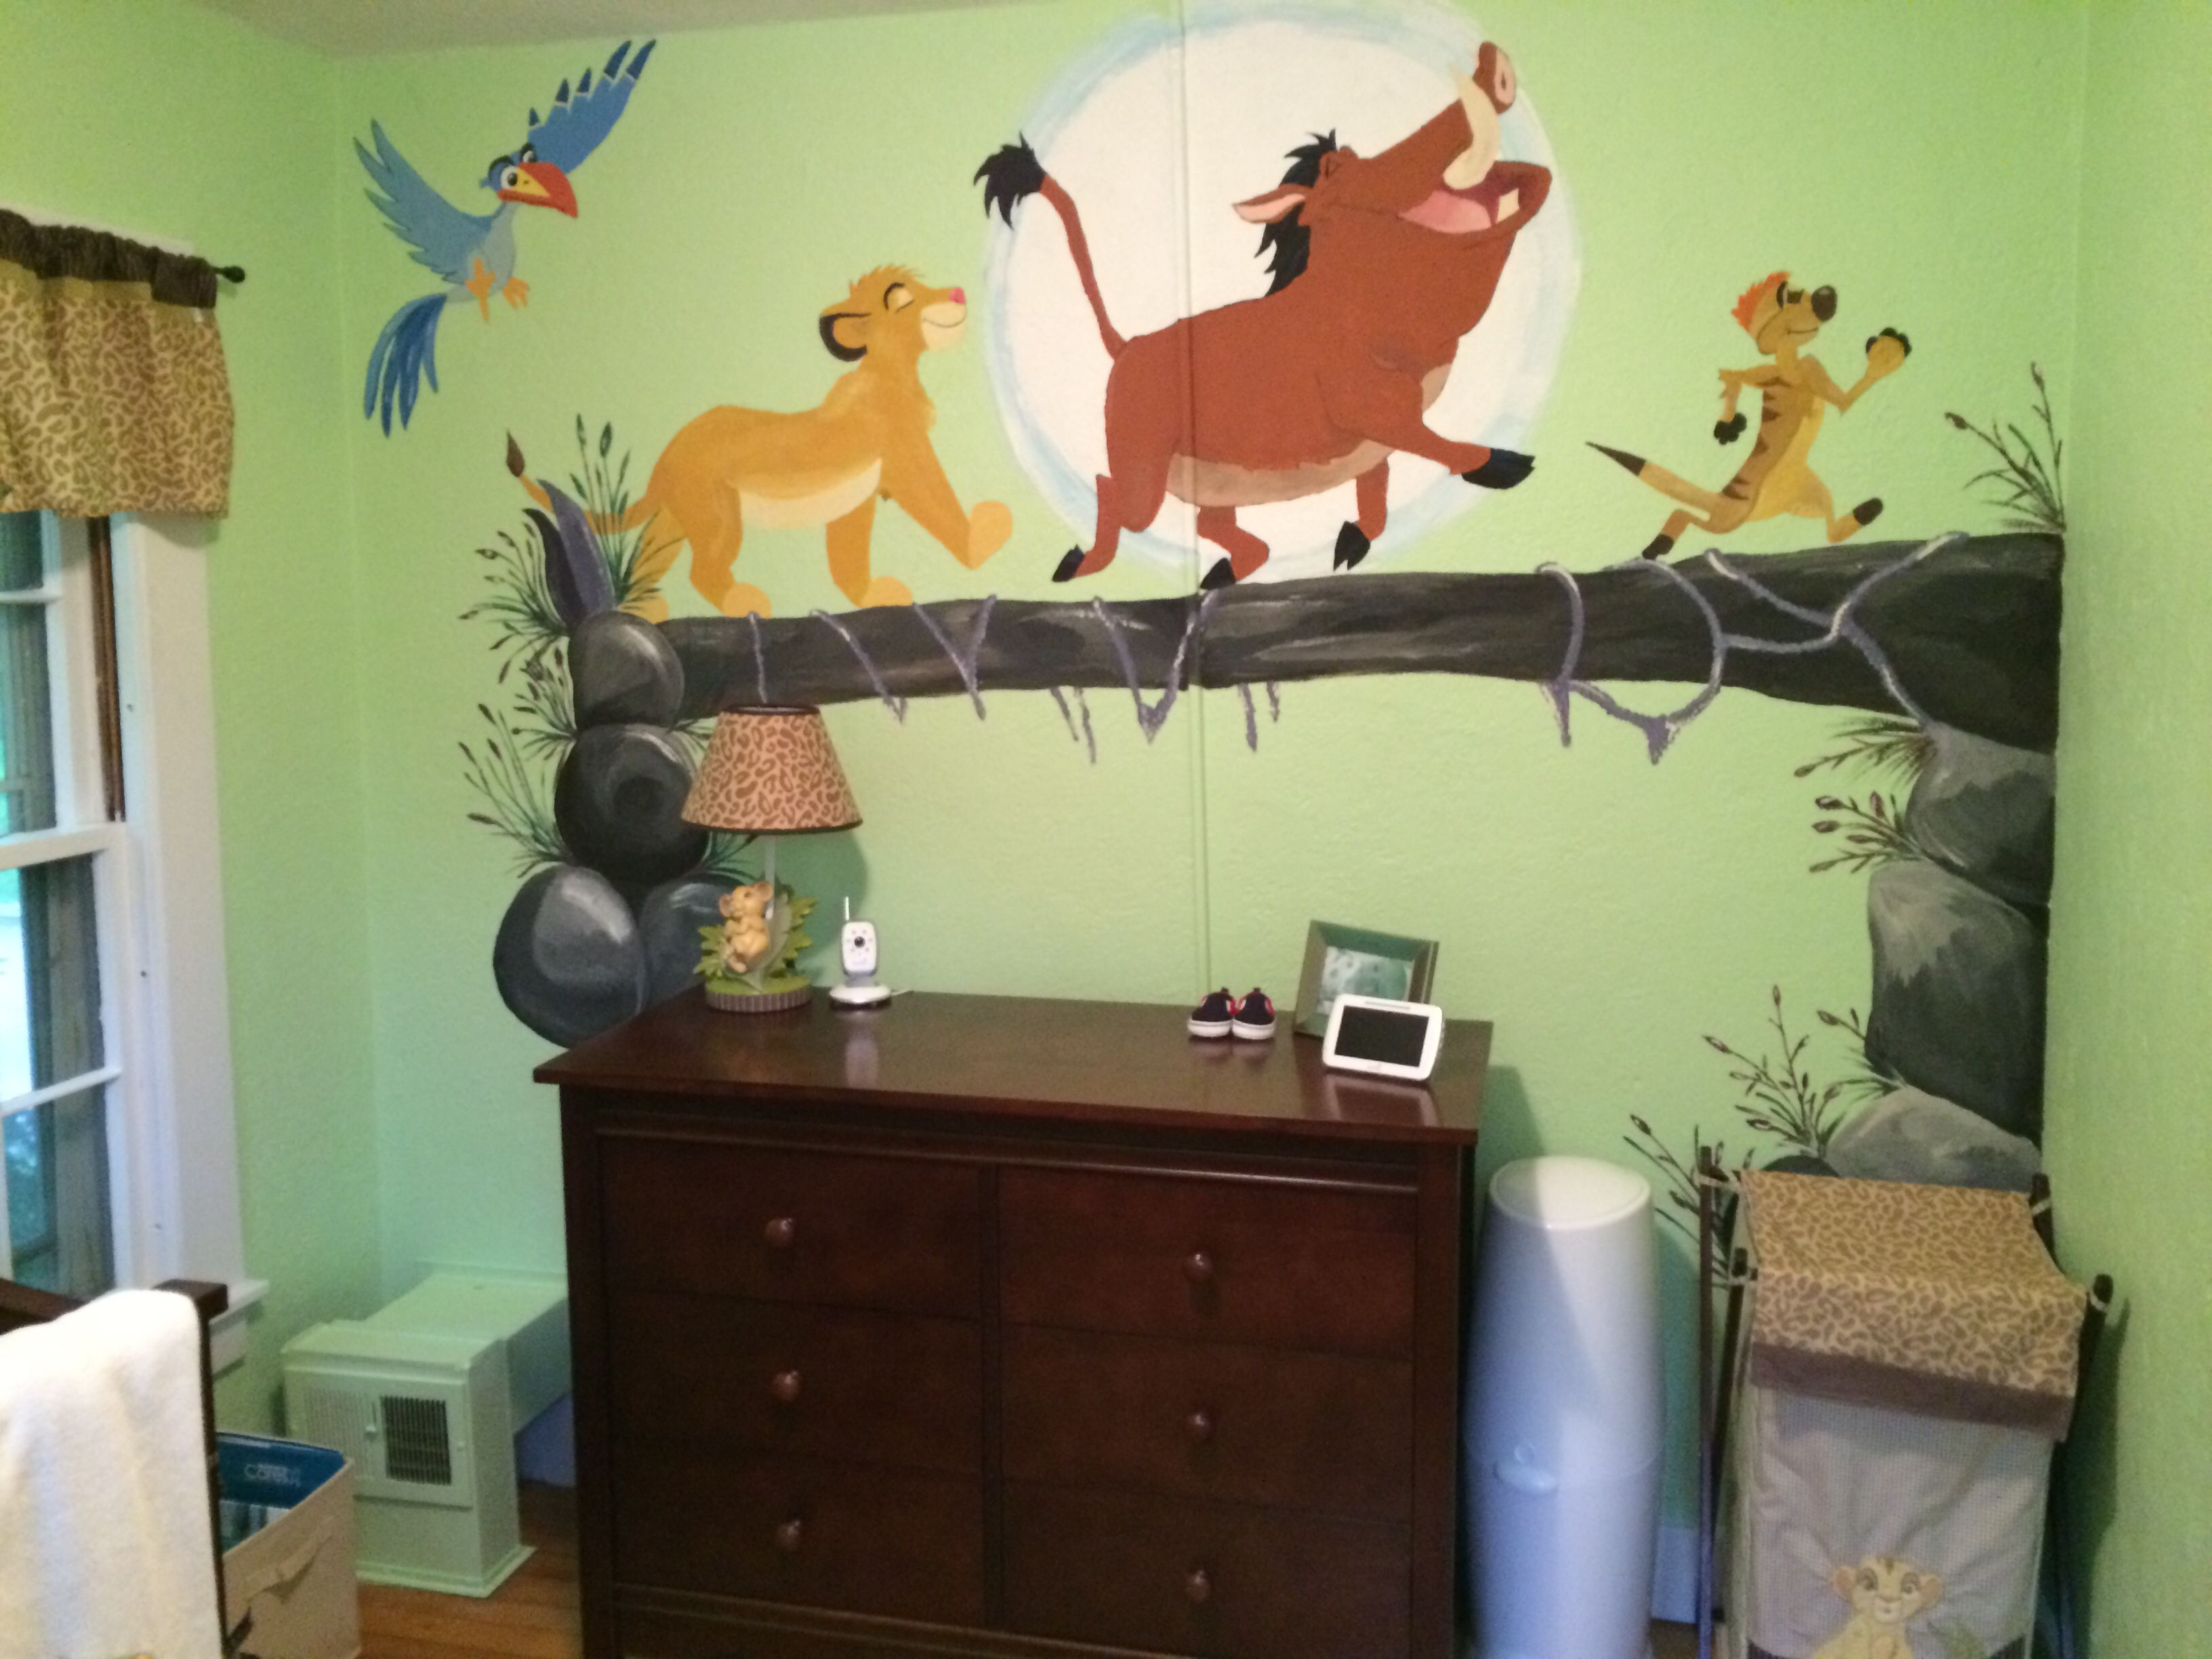 Our boys lion king themed room | Mason pinning | Pinterest | Lions ...